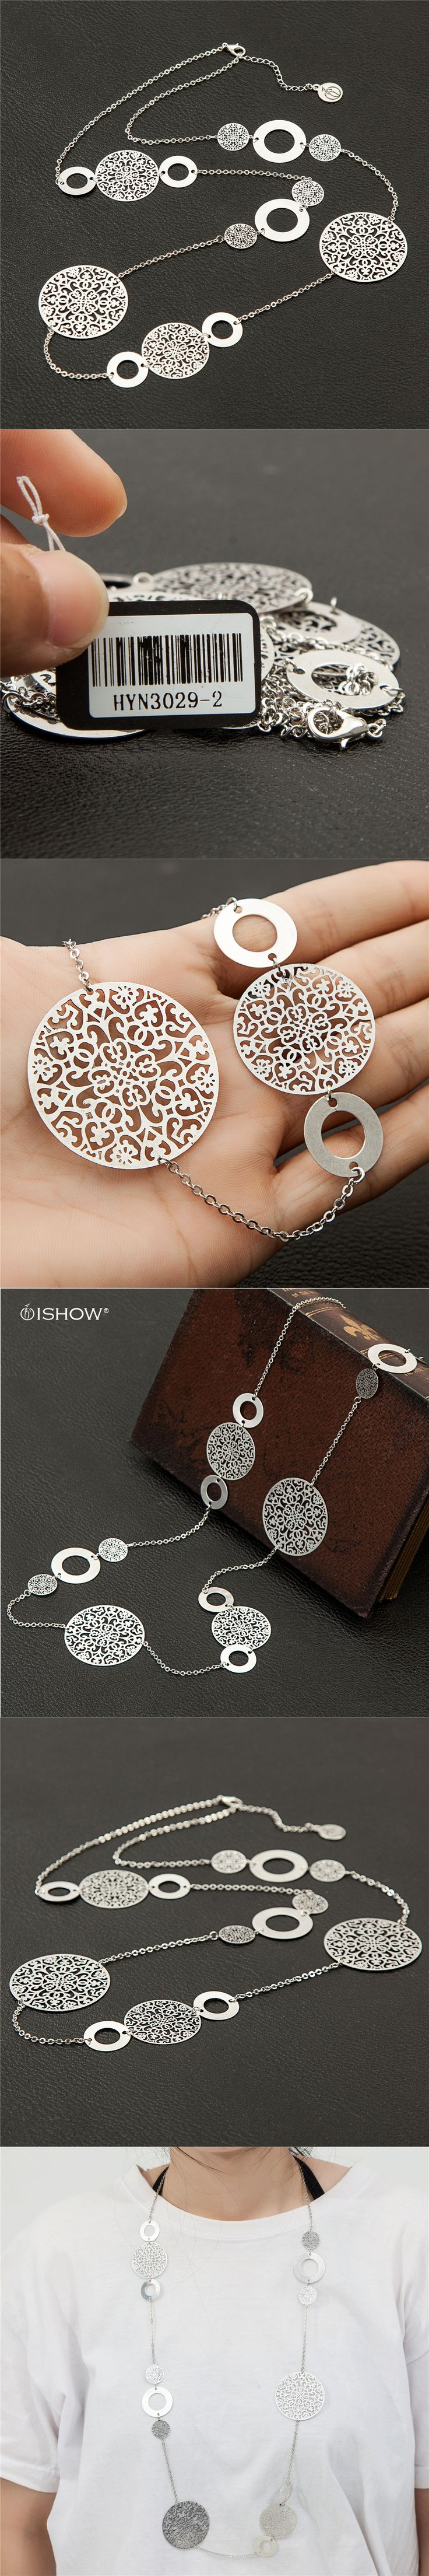 90 cm Copper Filigree Silver Necklace Carved Pattern Long Necklace Boho Collares mujer Colar feminino Copper Collares largos